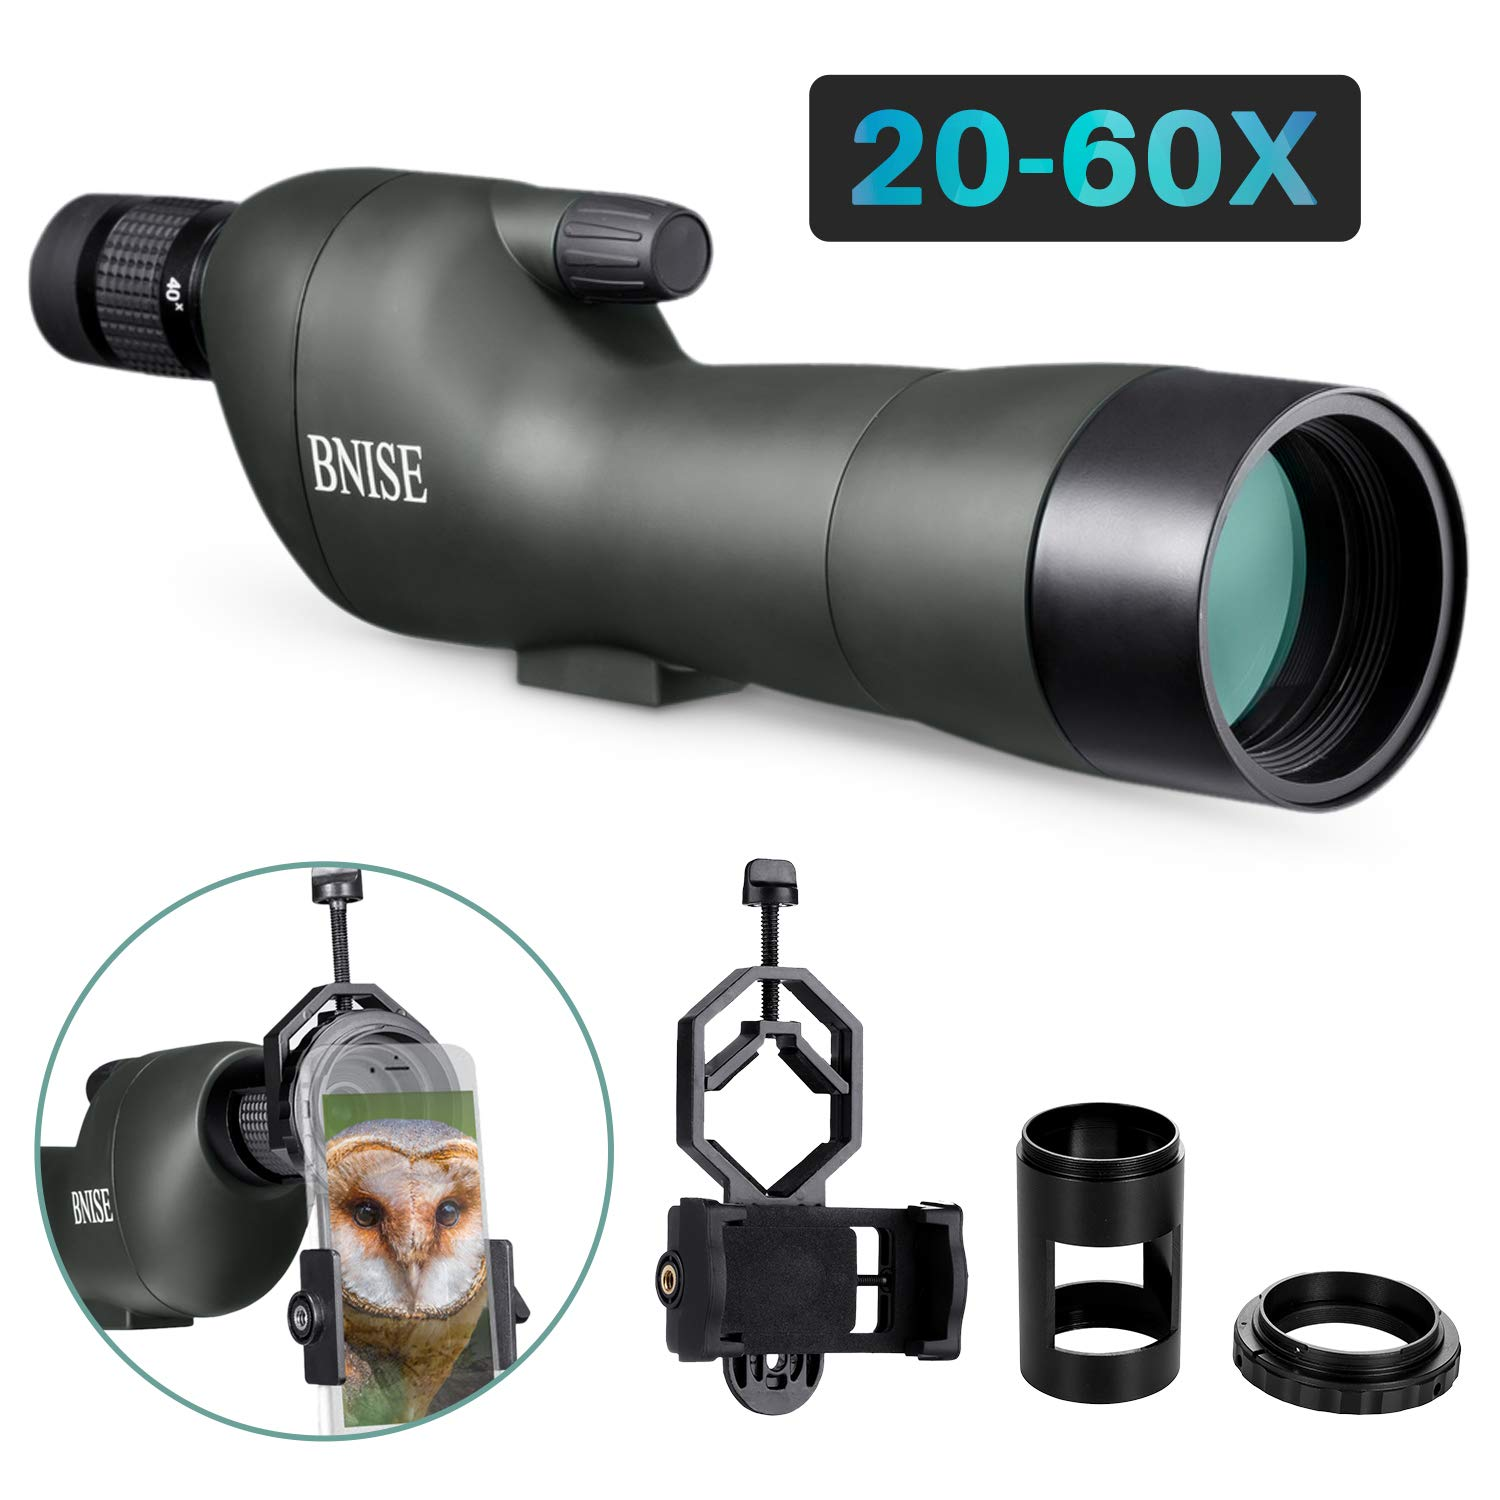 BNISE Spotting Scope - GOMU FMC Optics - 20-60x60 Zoom Monocular Waterproof Telescope - with Tripod for Hunting, Camera and Phone Photography Adapter by BNISE